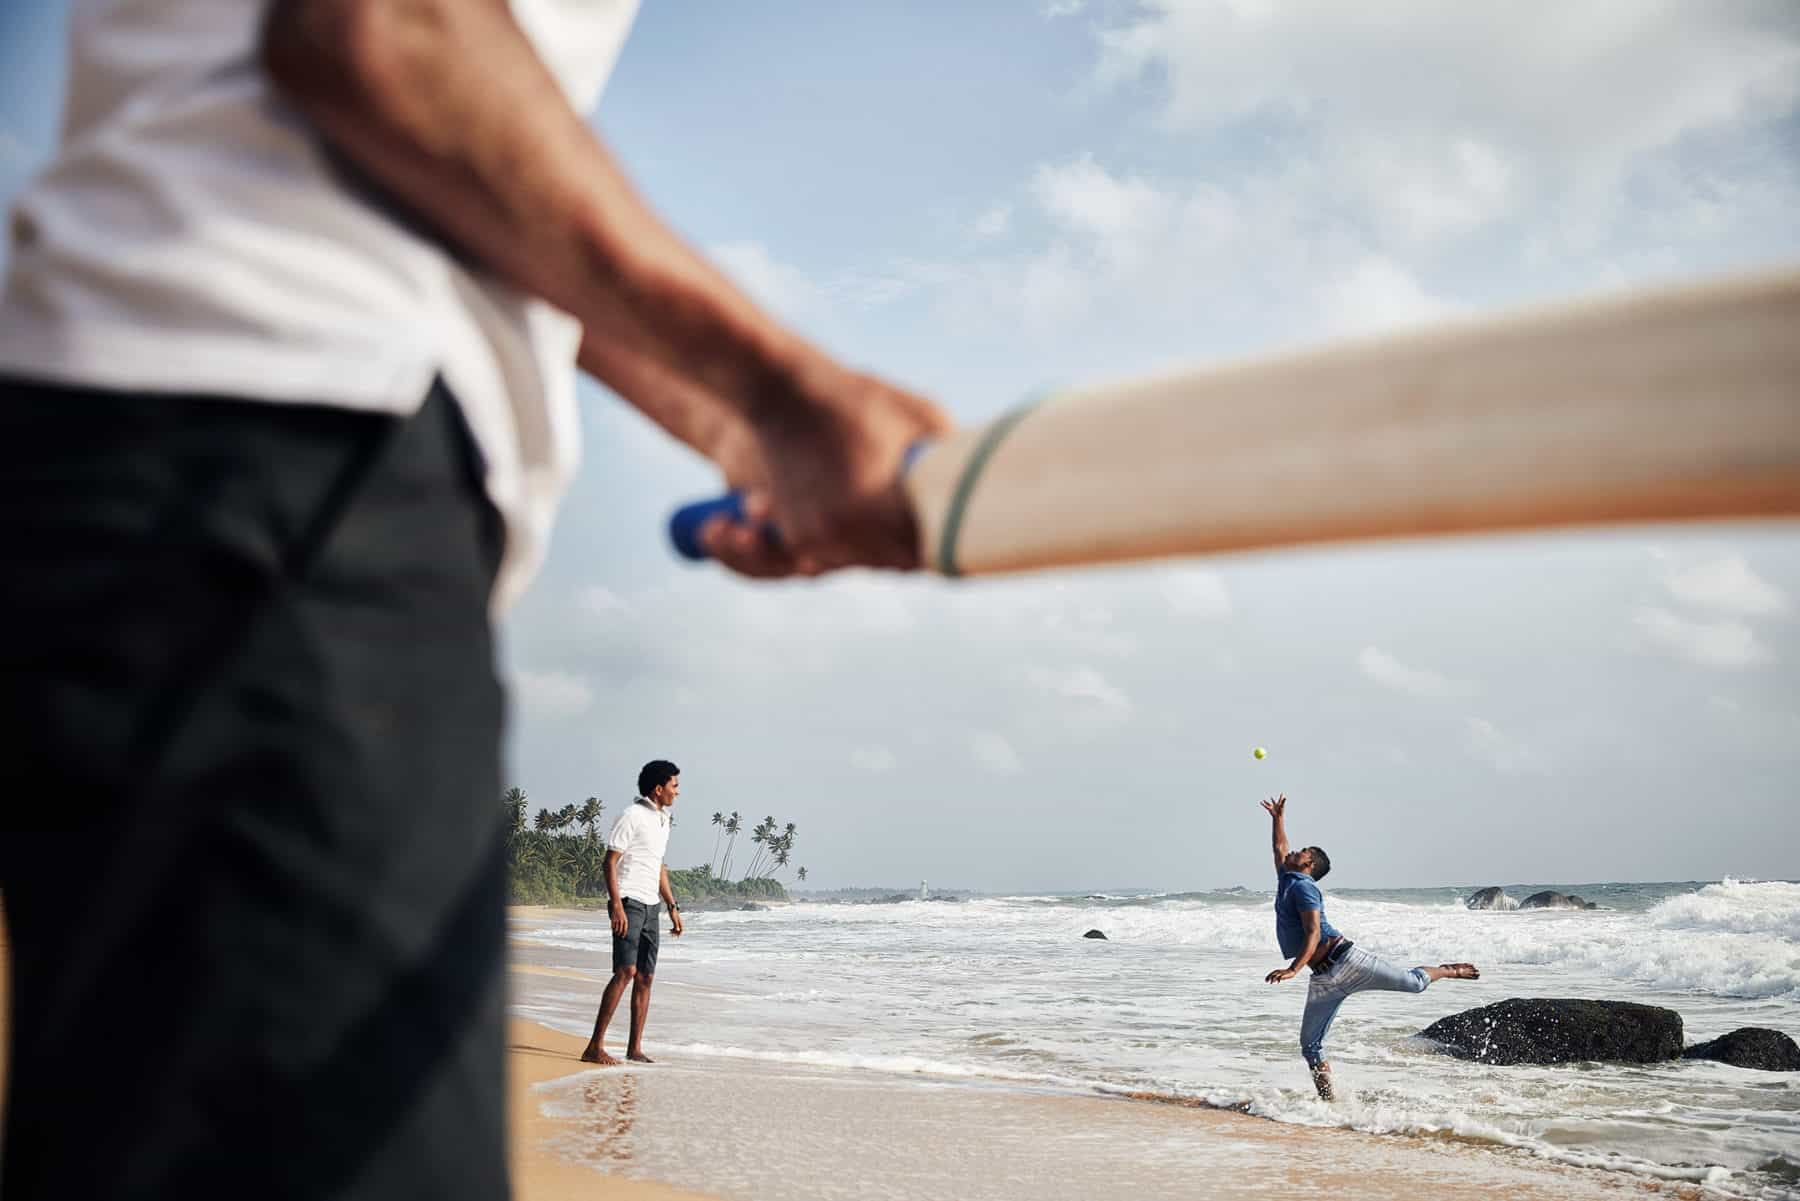 Cricket being played locals on a beach in Sri Lanka